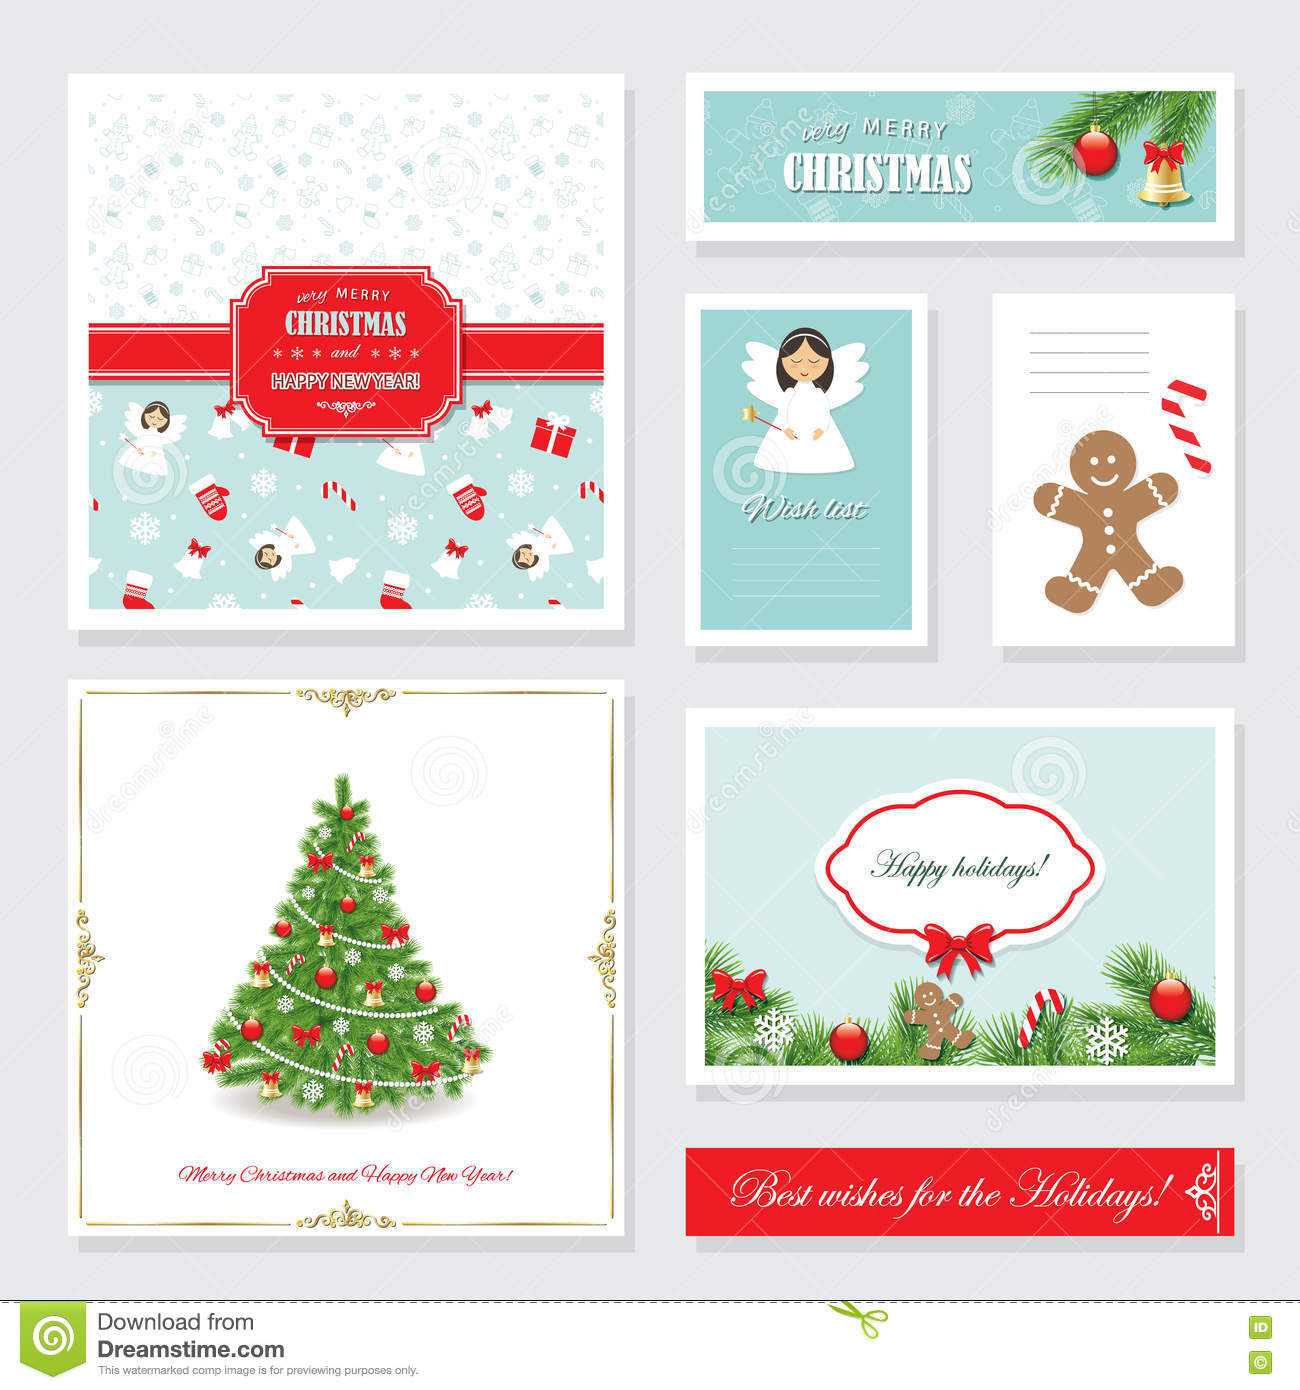 download christmas and happy new year templates set stock vector illustration of frame